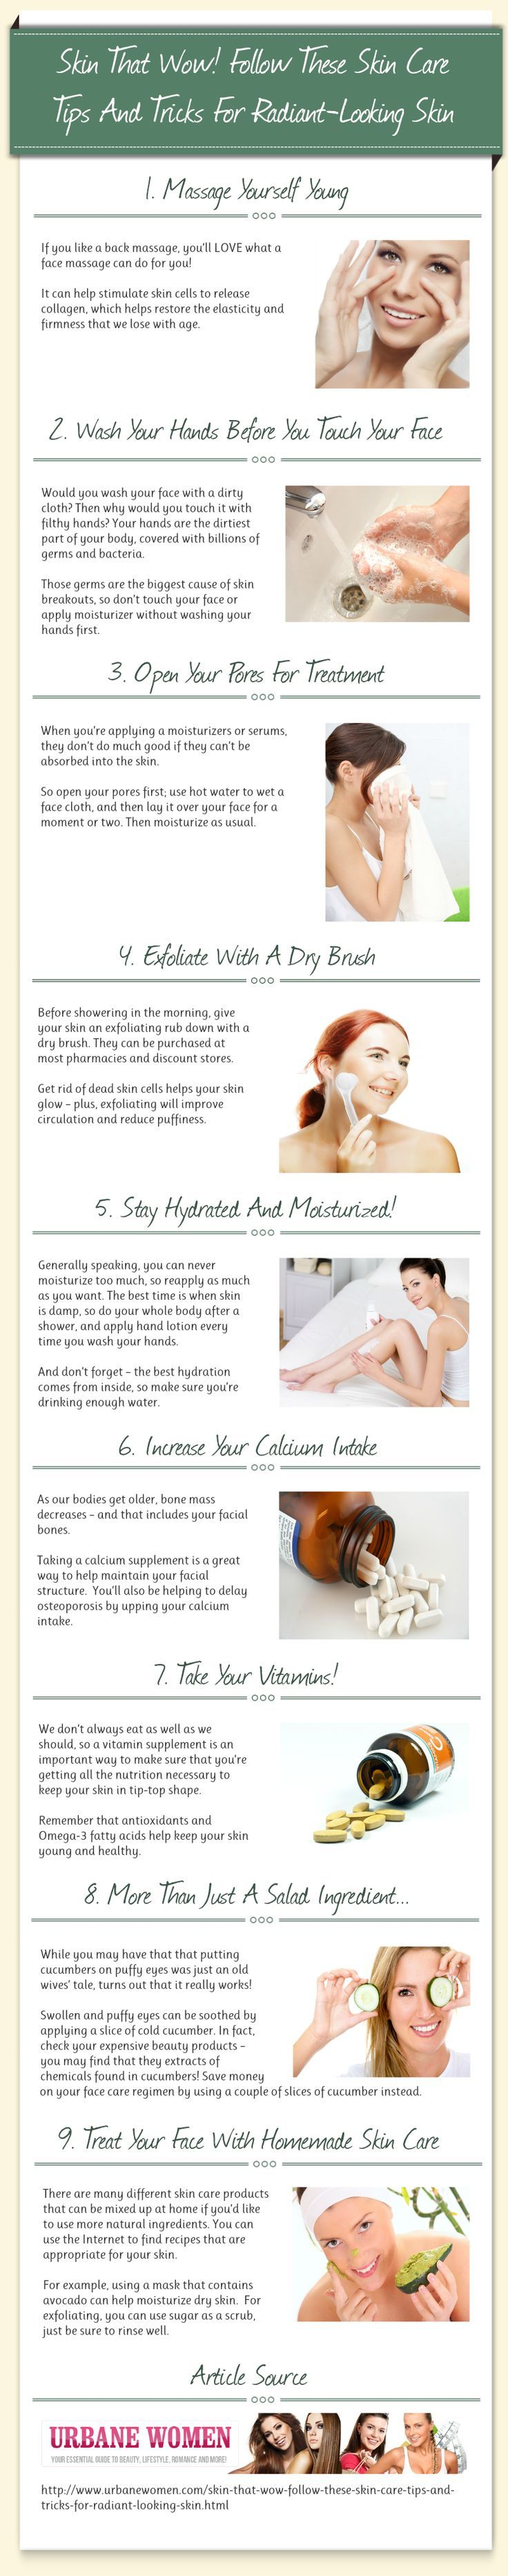 Skin That Wow Follow These Skin Care Tips And Tricks For ...